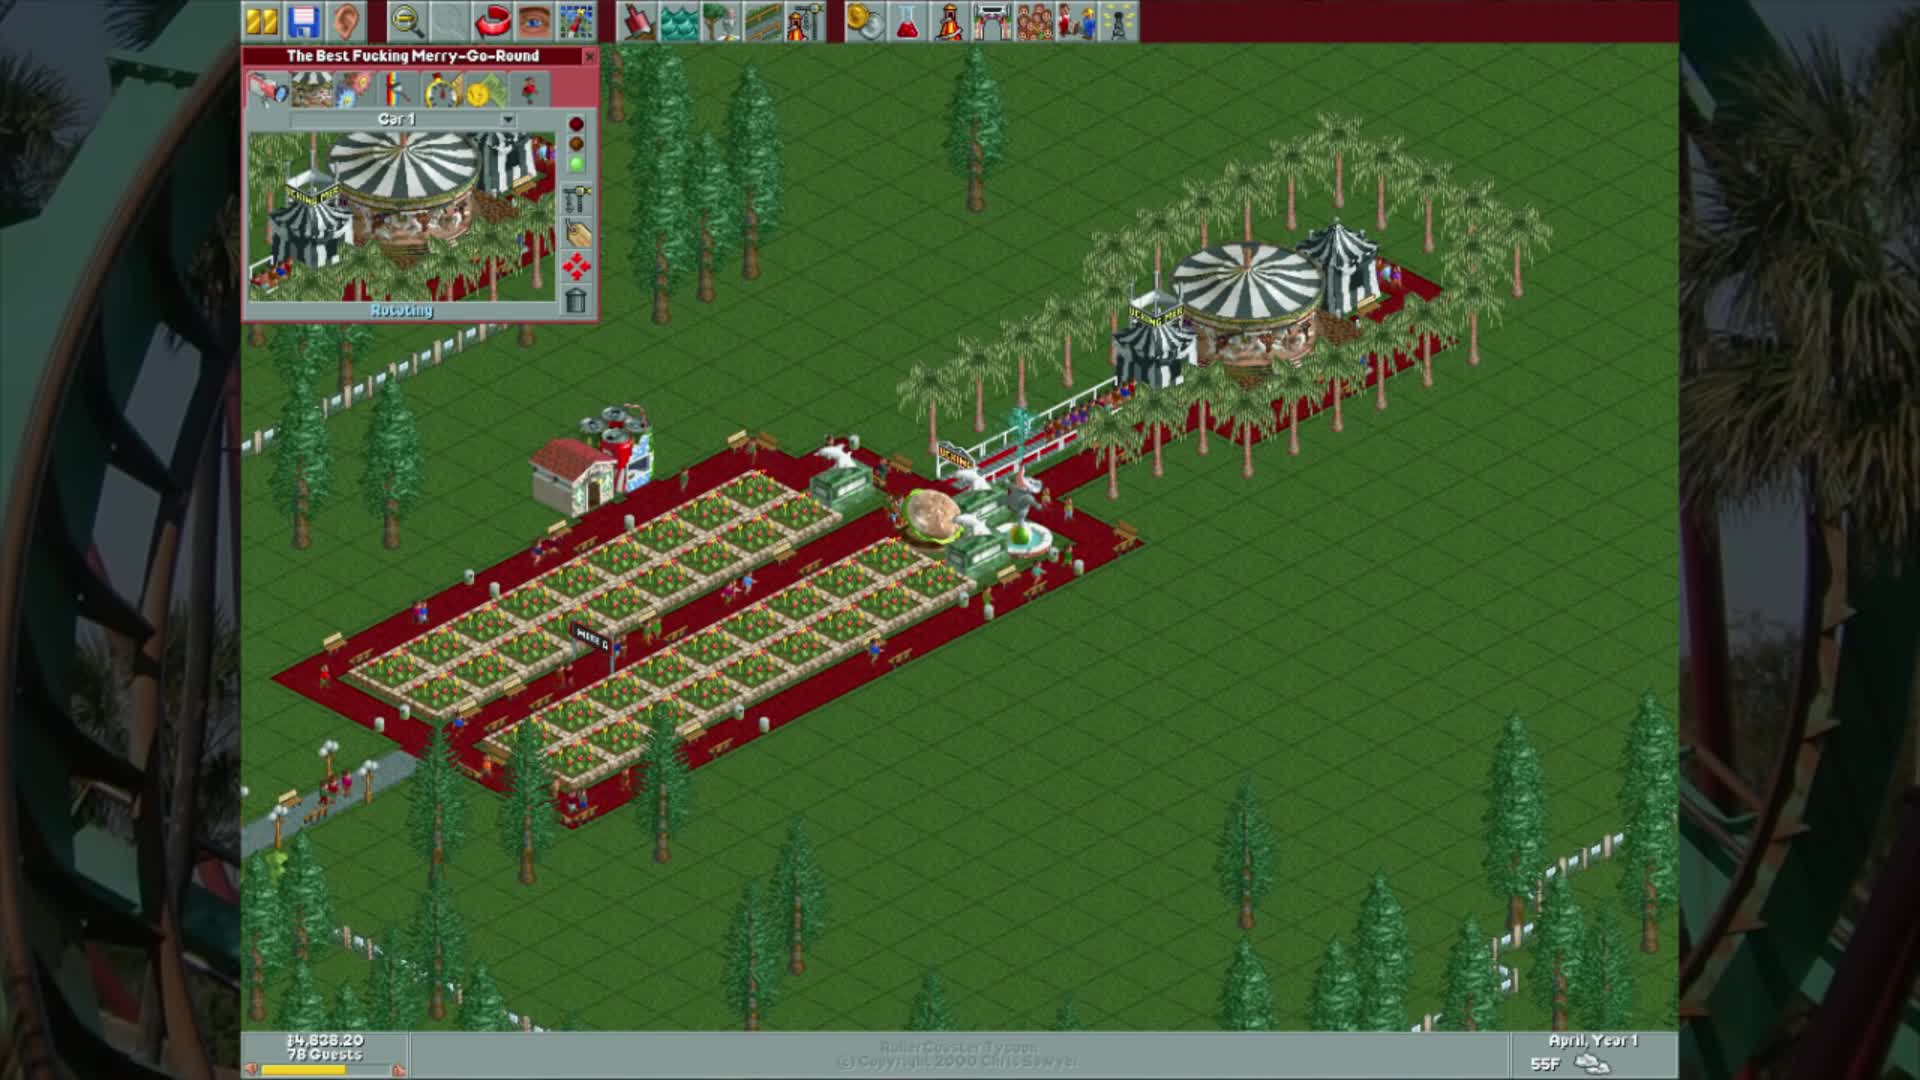 Forest Frontiers, Gaming, RCT, RCT1, Roller Coaster Tycoon, let's play, lp, silveragescientist, RCT 9jioswdejf90834erfj90384rtf GIFs